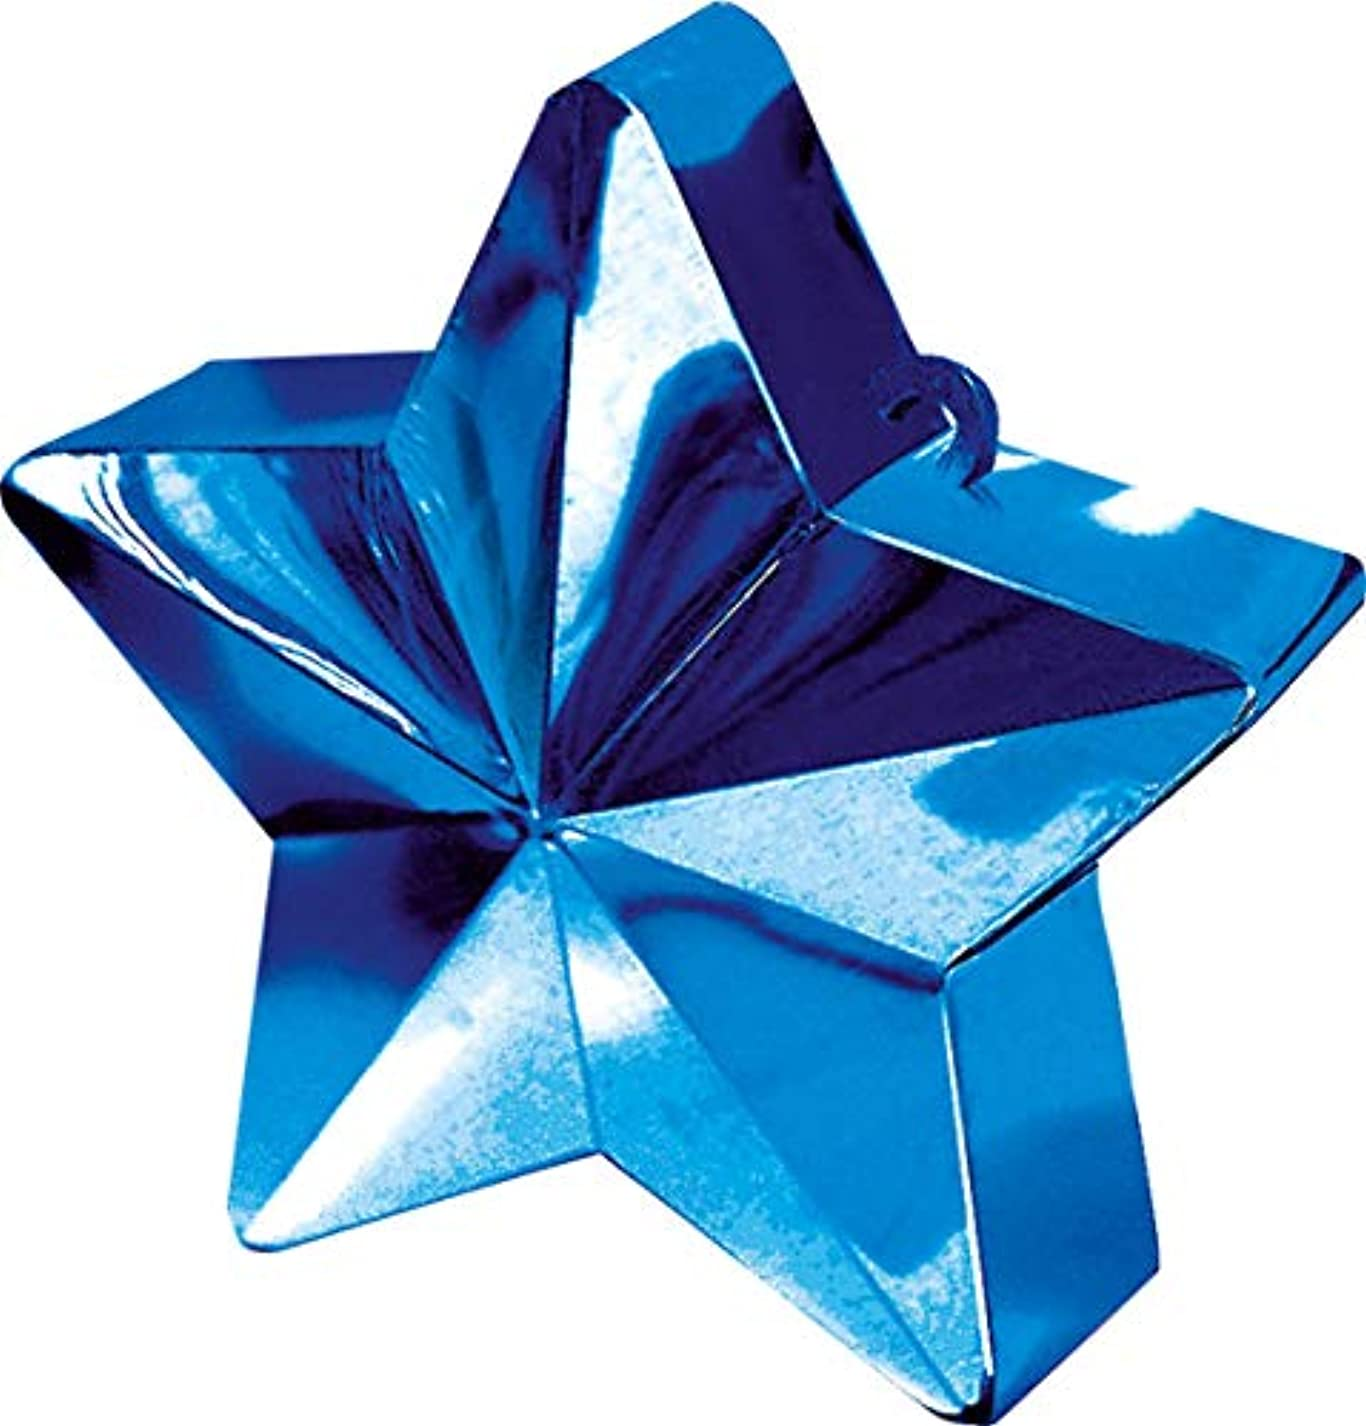 Blue Star Electroplated Balloon Weight | Party Decor wkf354901939010